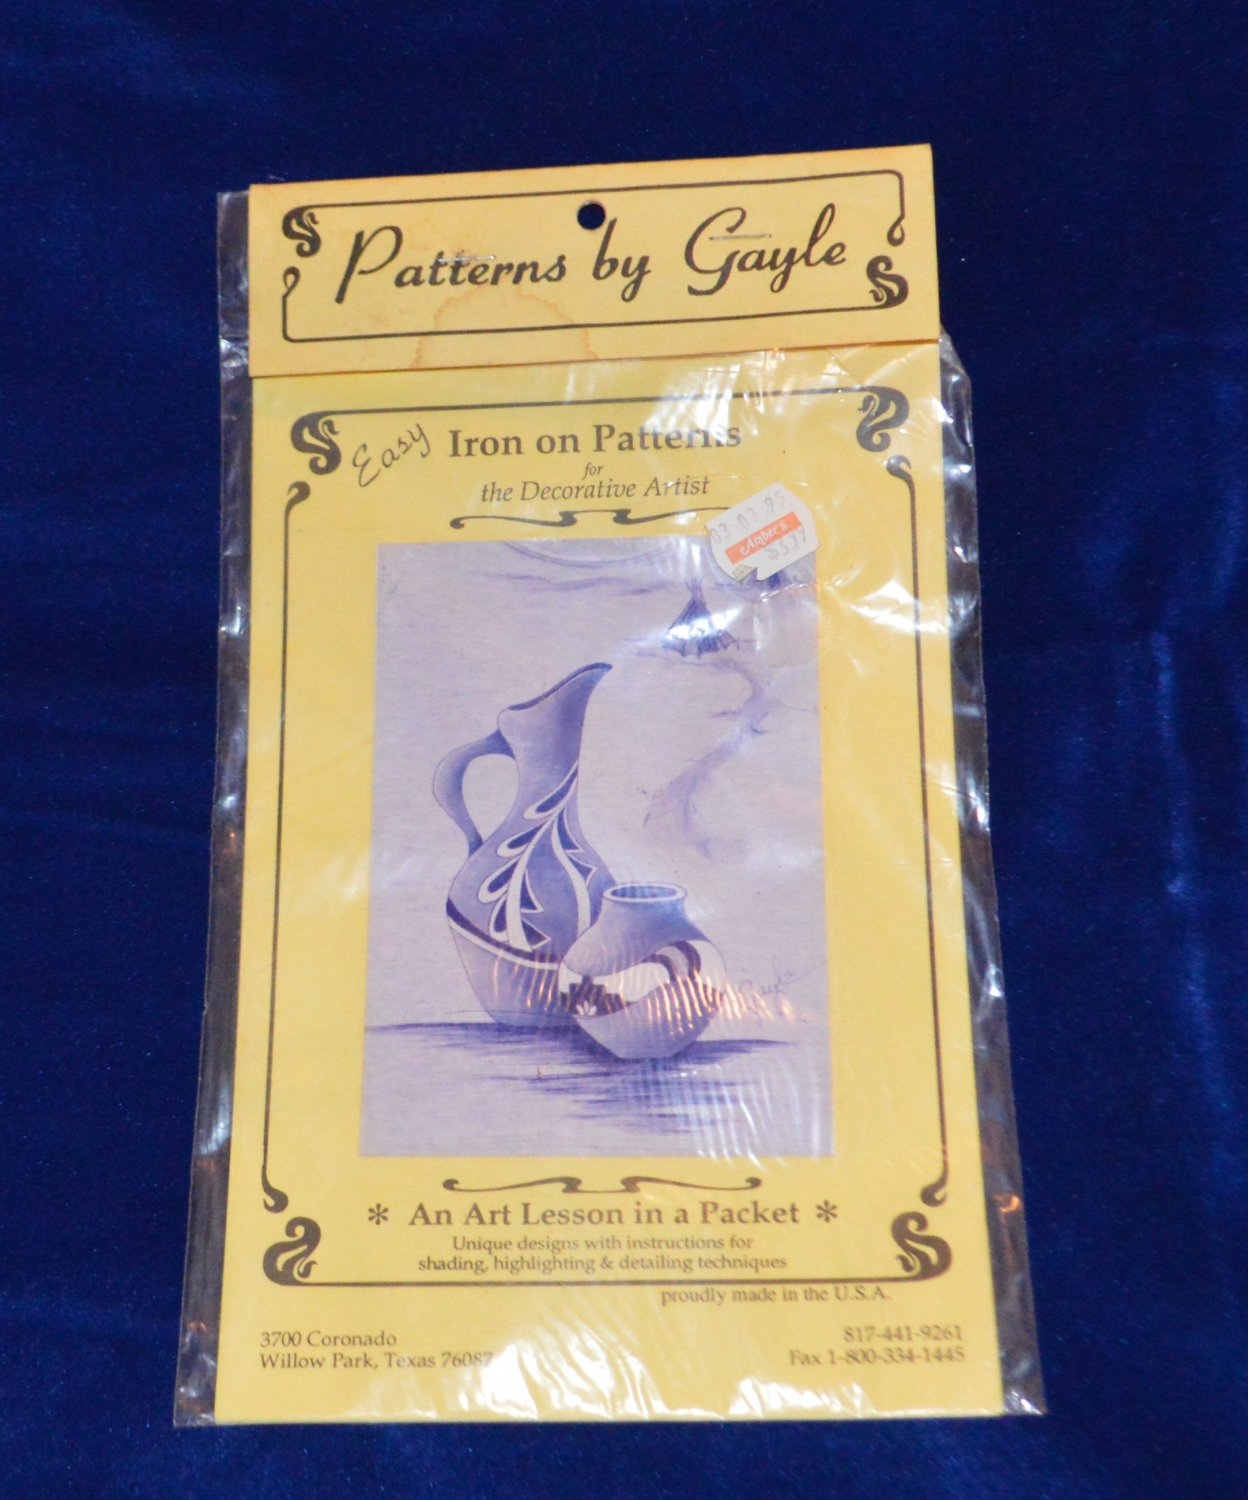 Patterns by Gayle Iron on Western Pottery for Decorative Artist